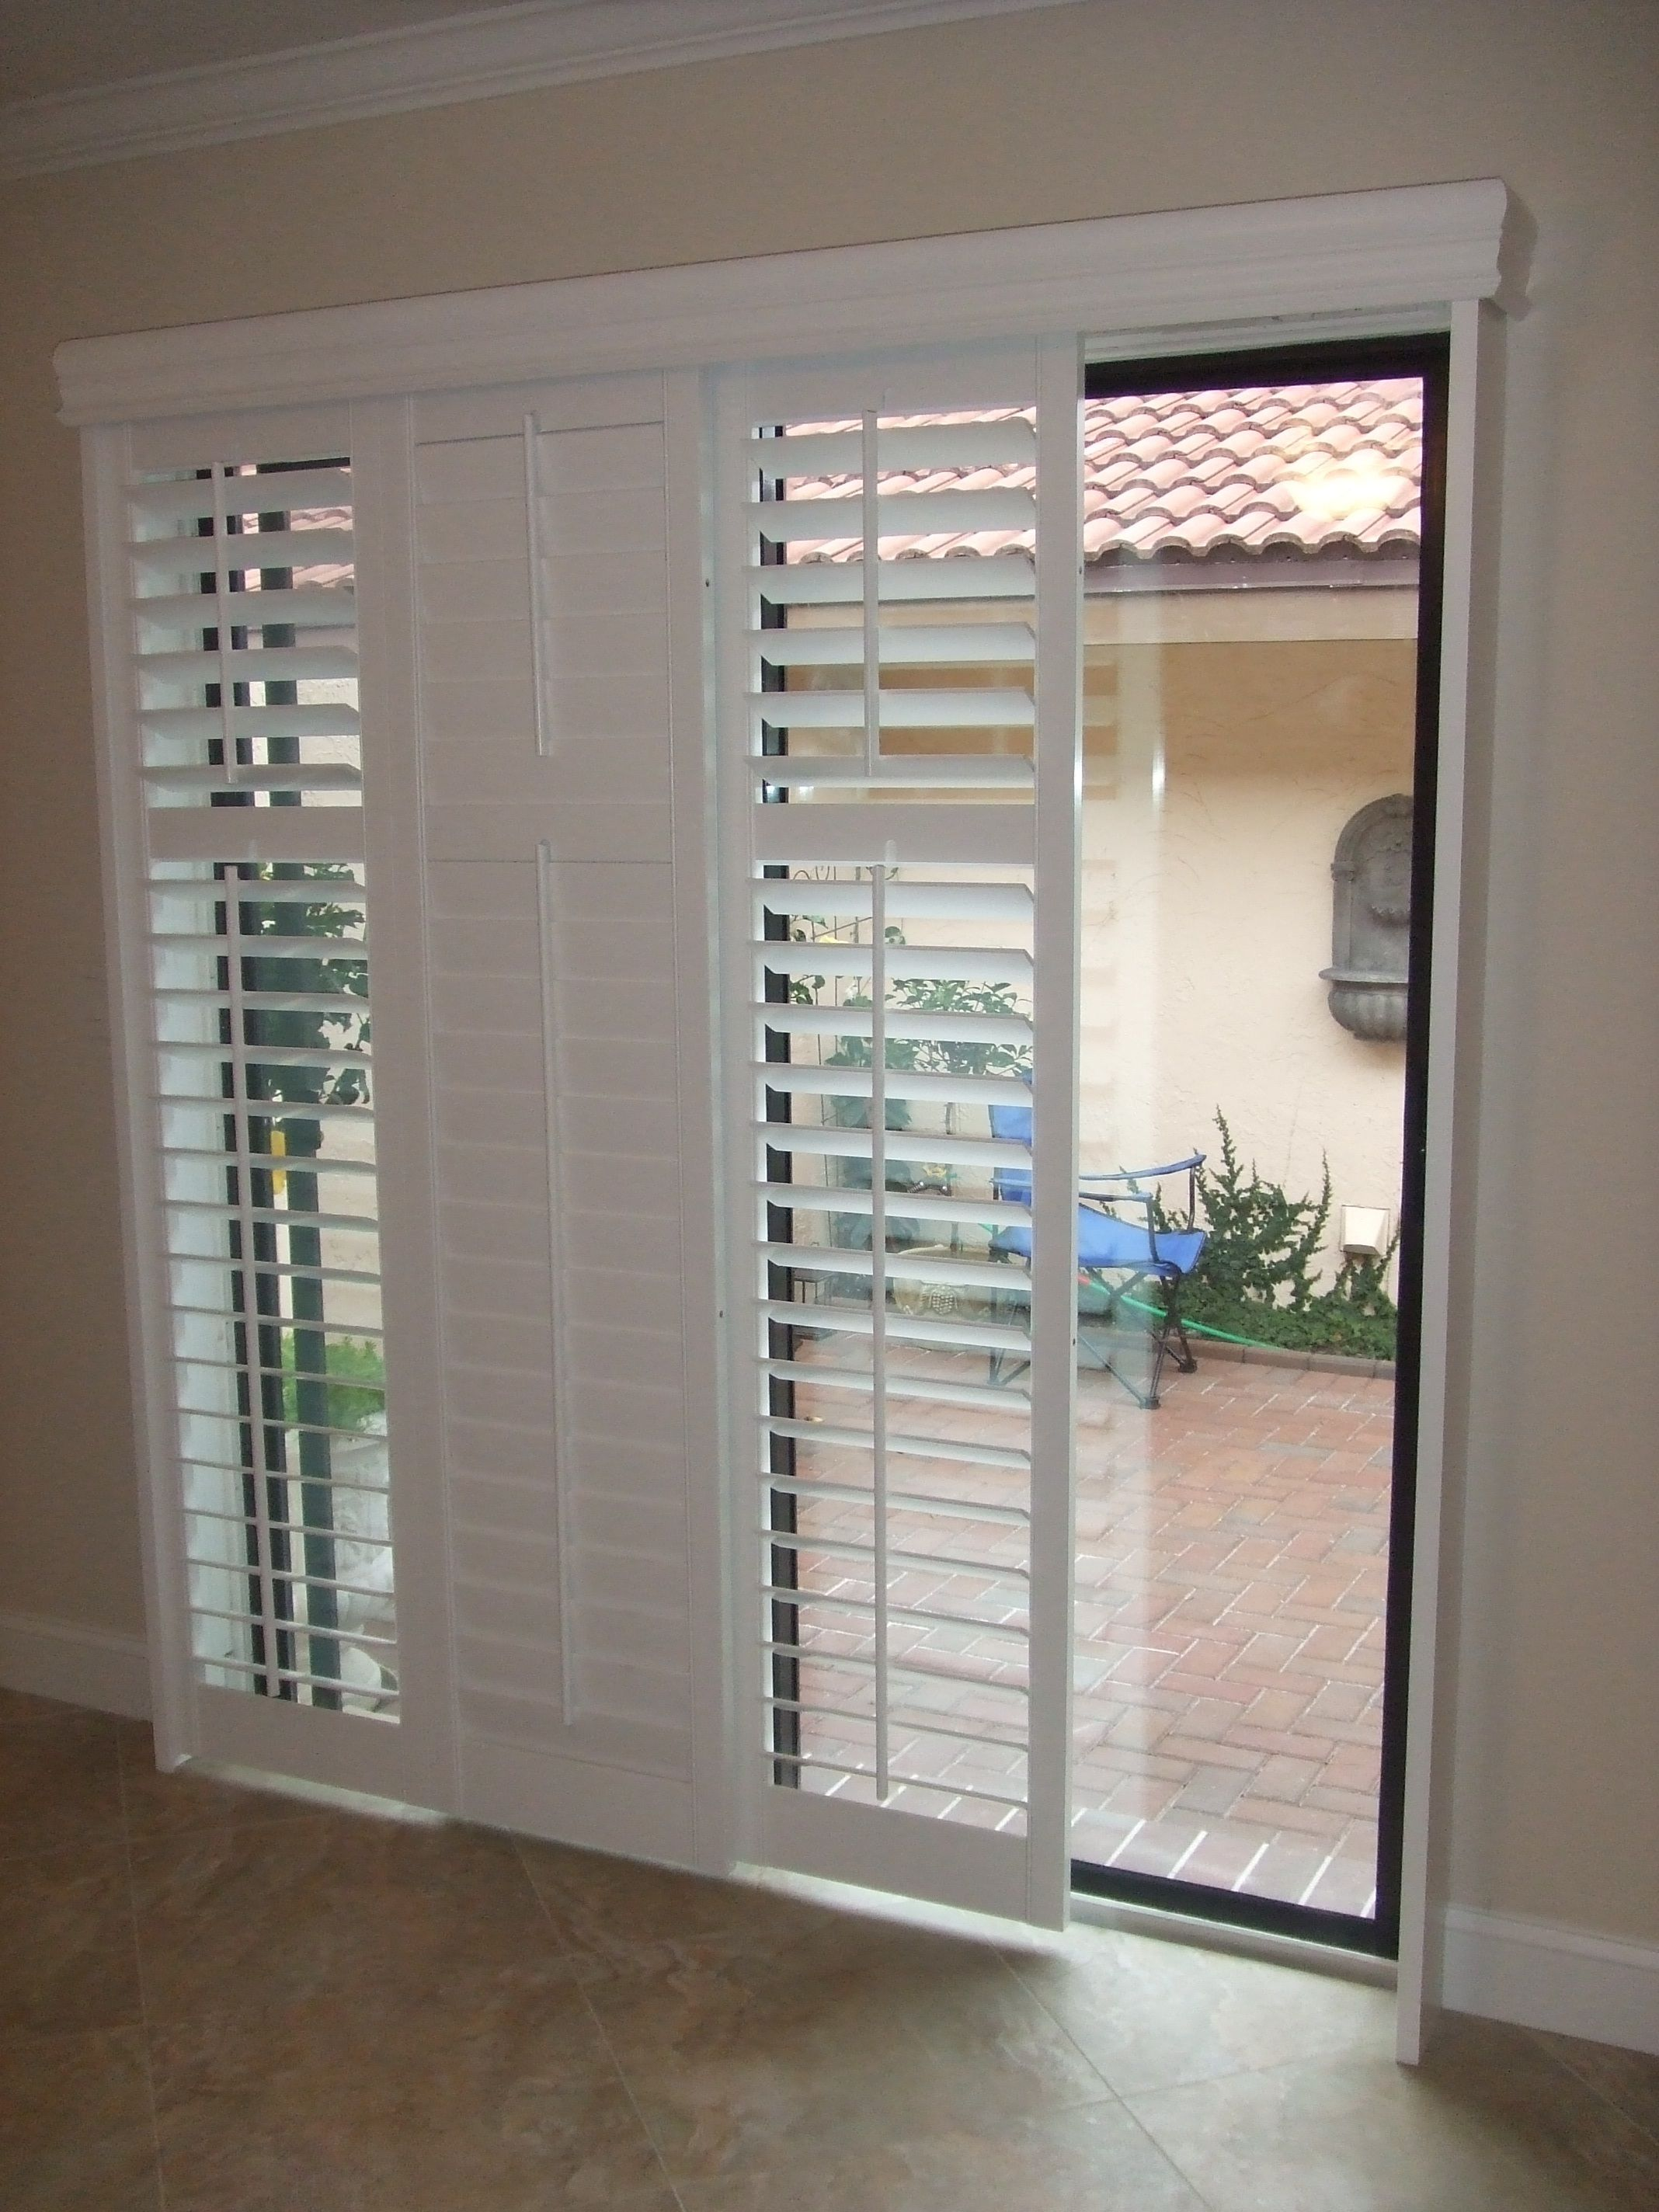 door co blinds e city discount kitchen adelaide pcok blindsdiscount roller in area affordable